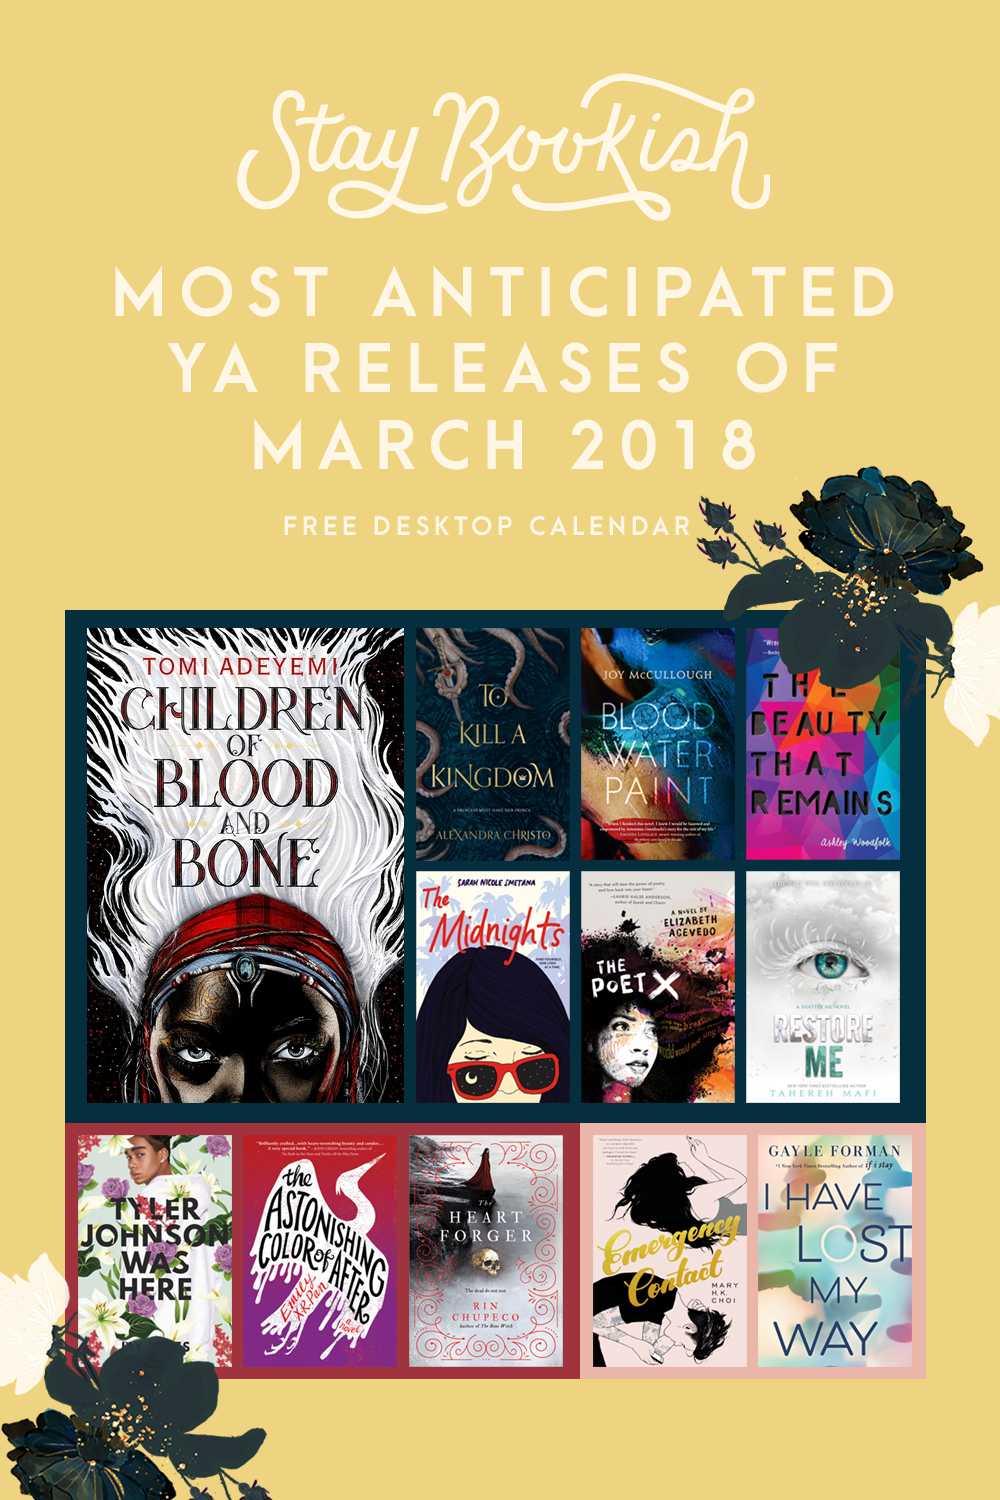 Our Most Anticipated YA Releases || March 2018